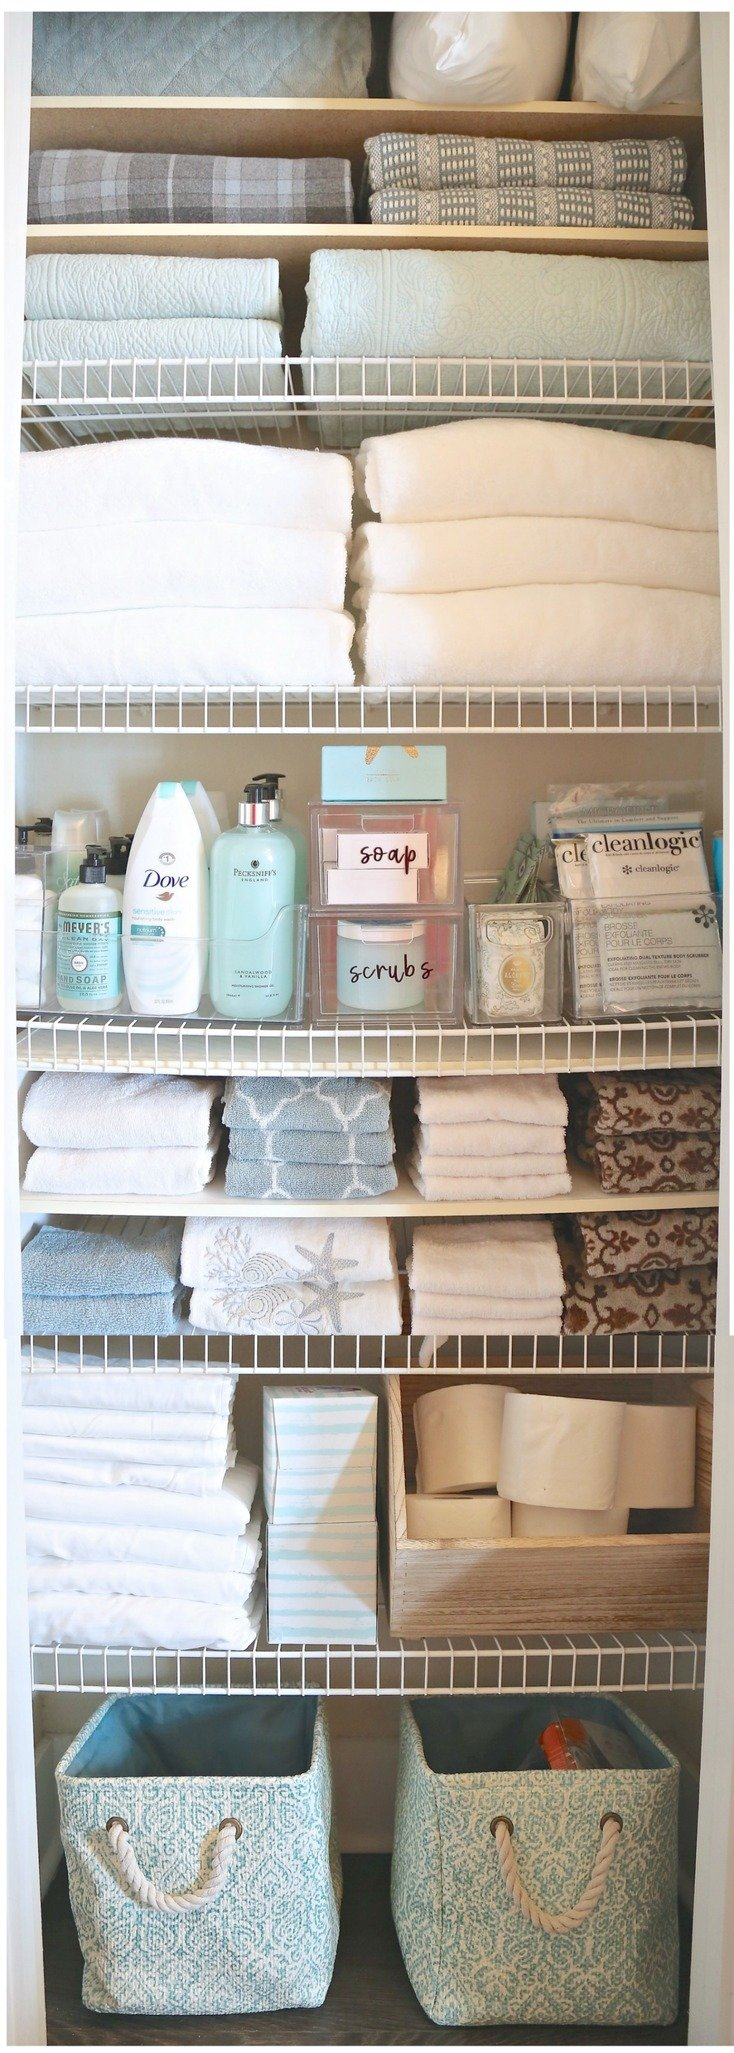 Apartment Bathroom Ideas Pinterest